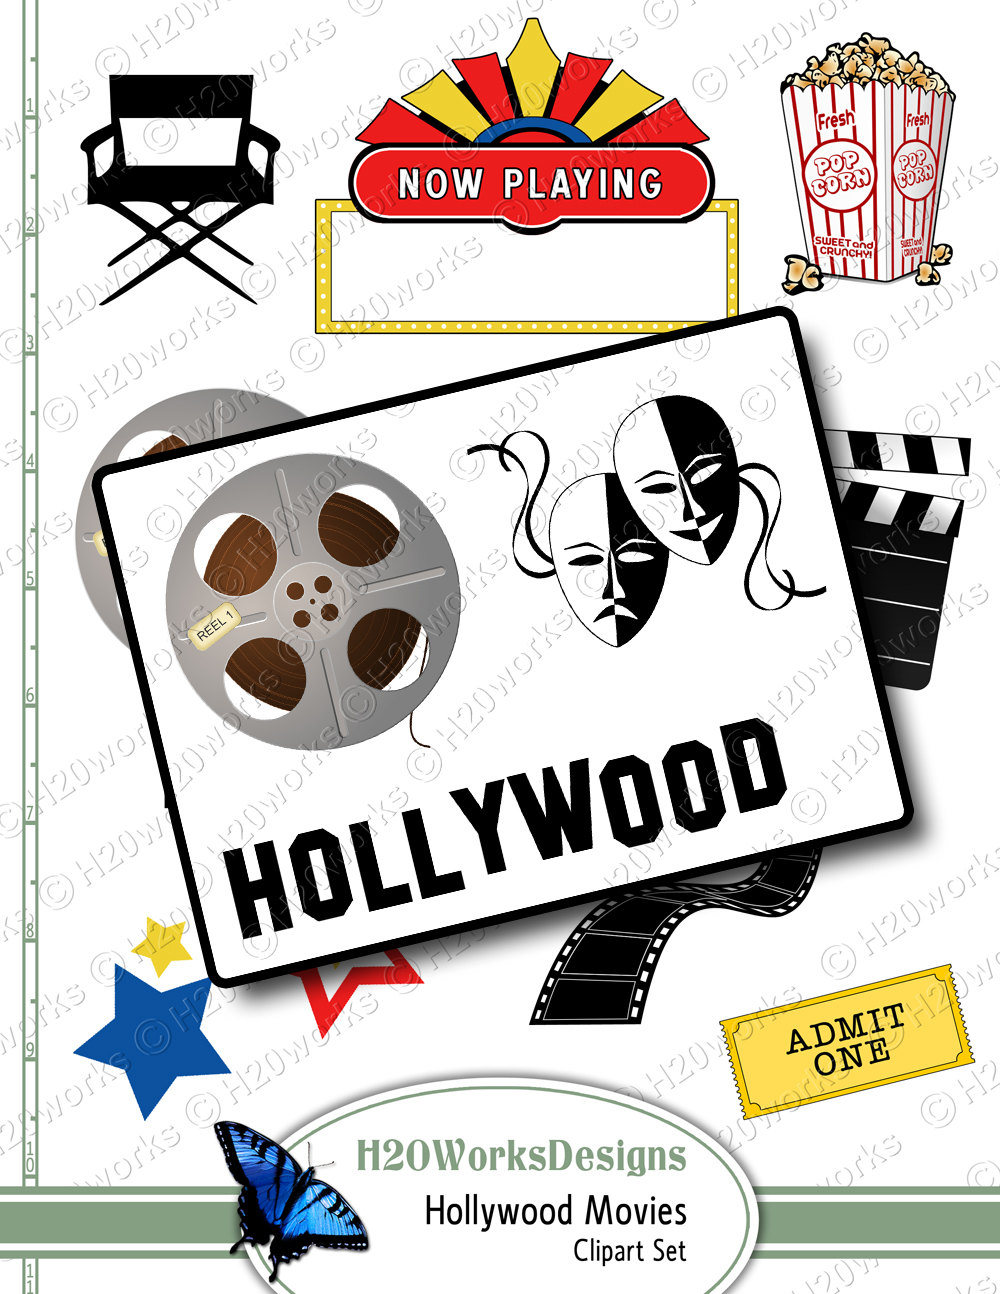 Hollywood Movies Clipart On 8 5x11 Sheet By H20worksdesigns